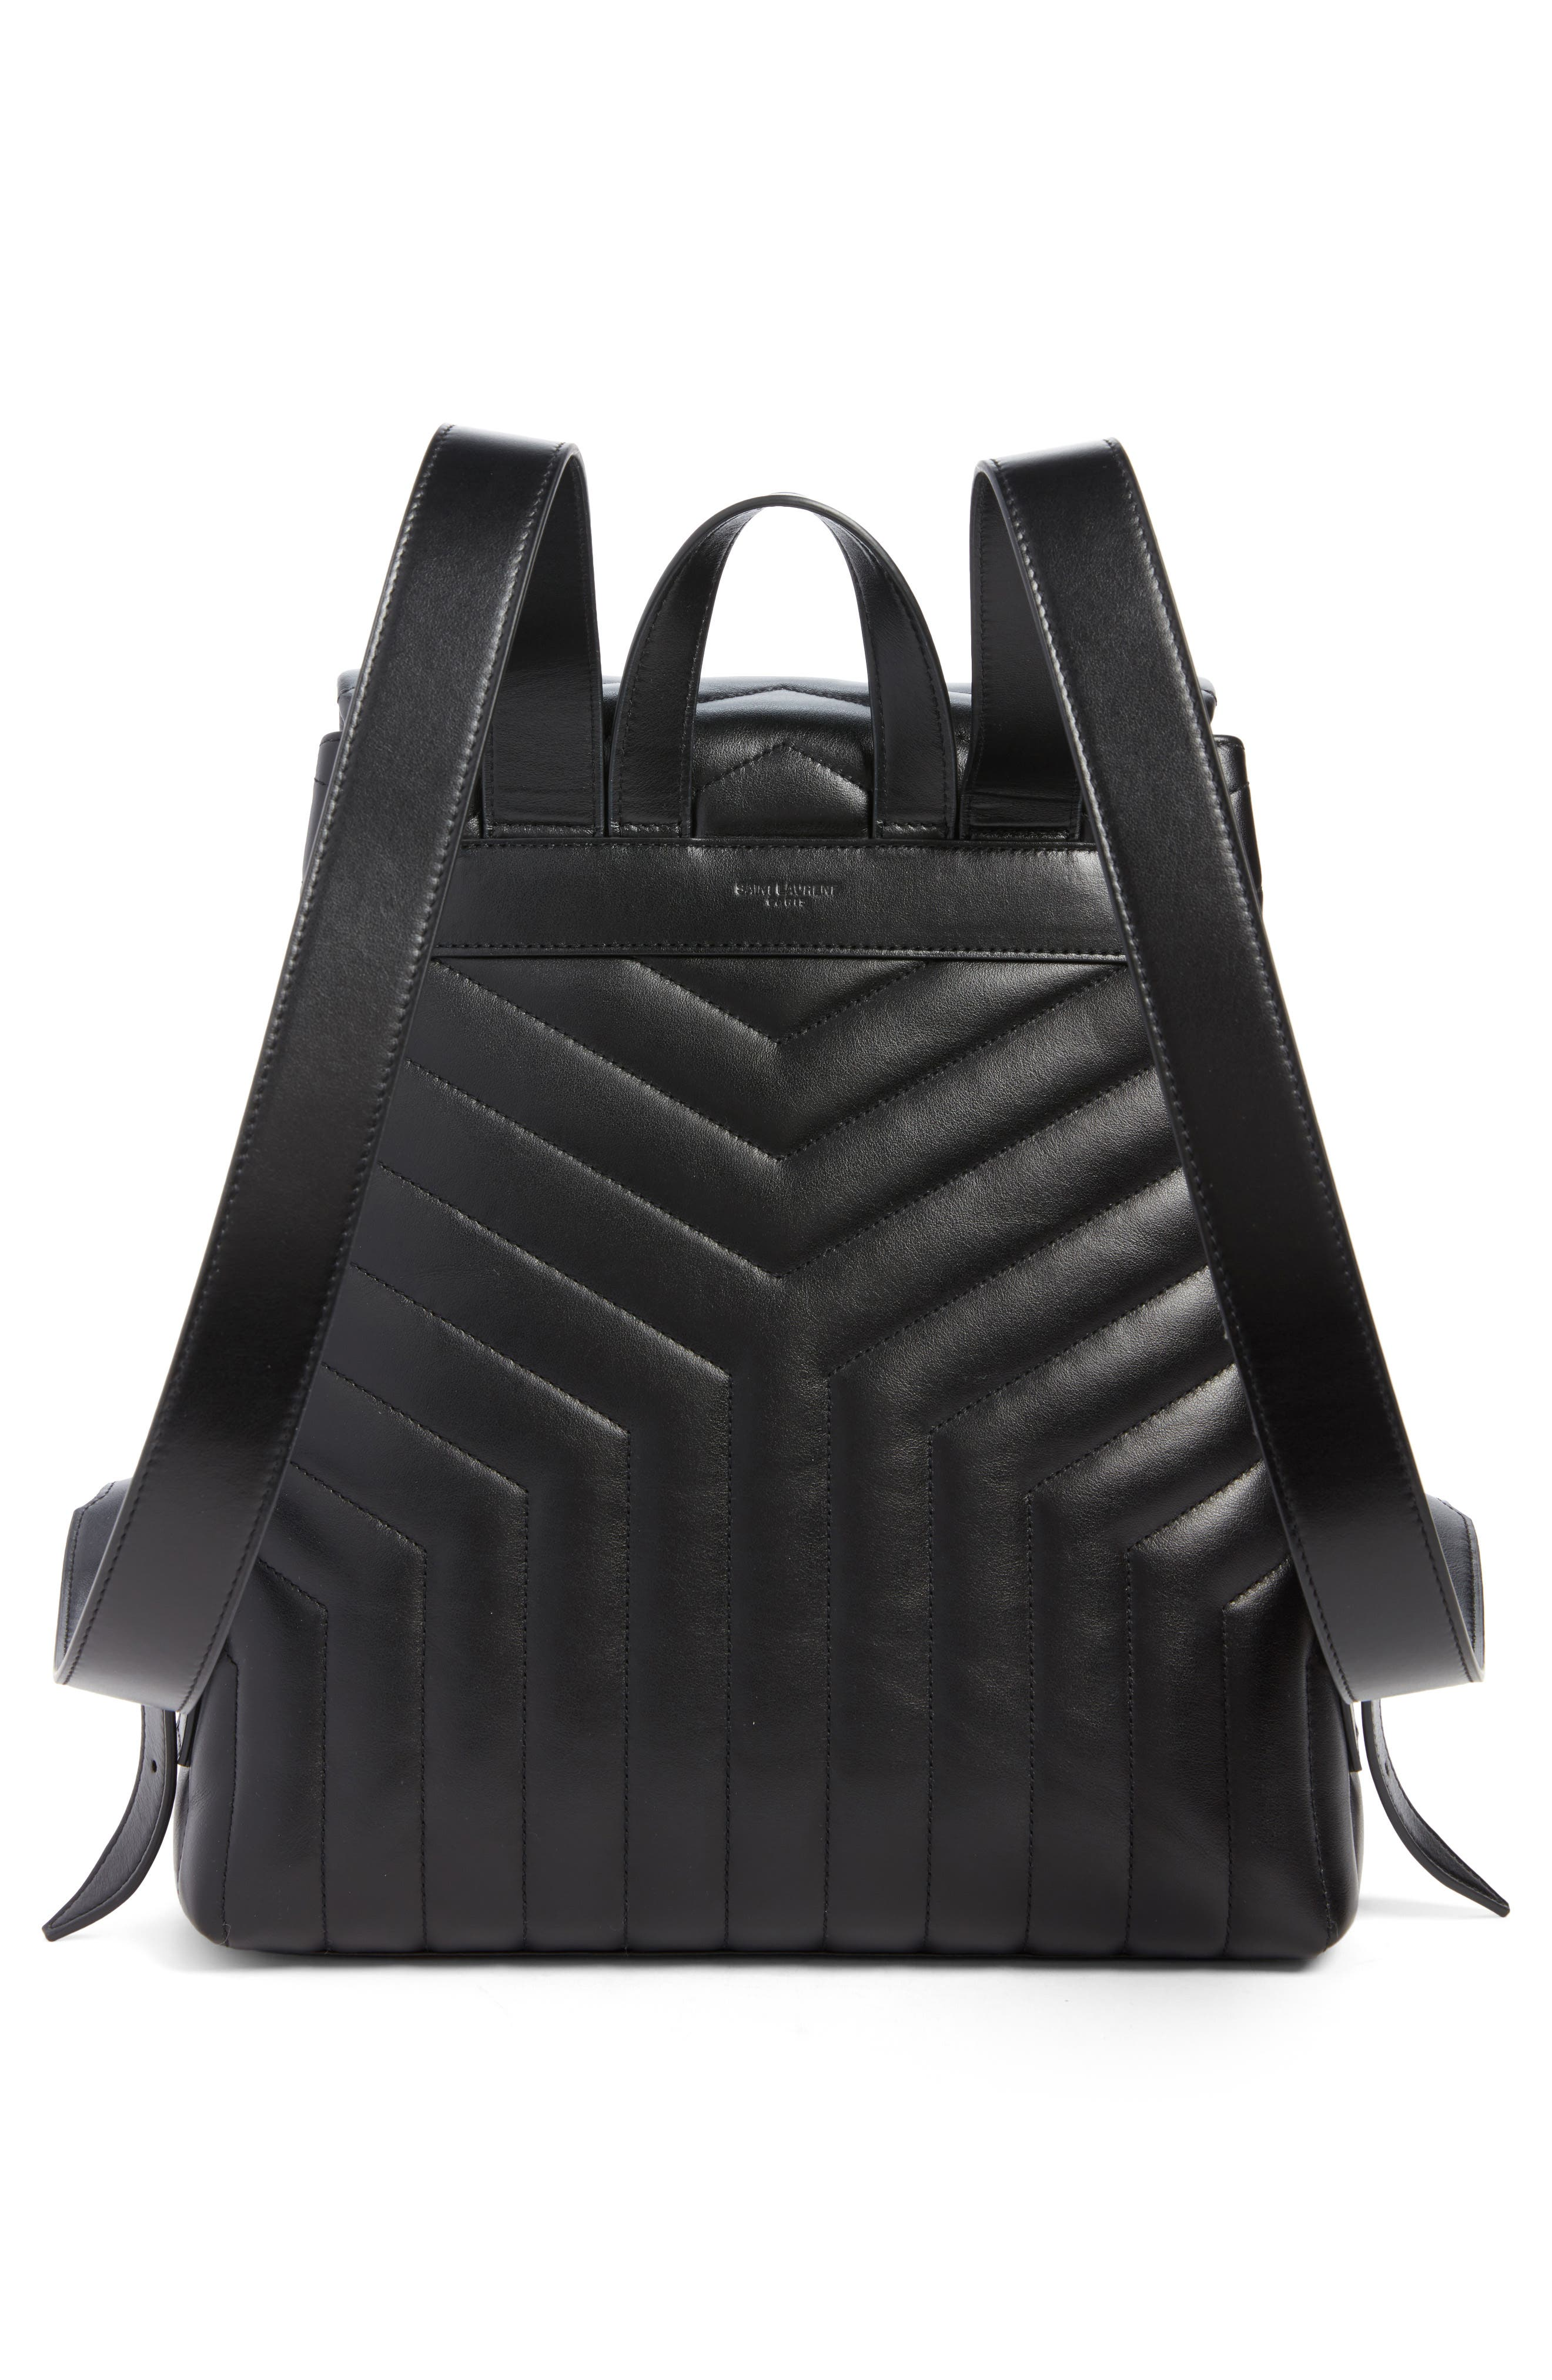 Medium Loulou Calfskin Leather Backpack,                             Alternate thumbnail 3, color,                             Black